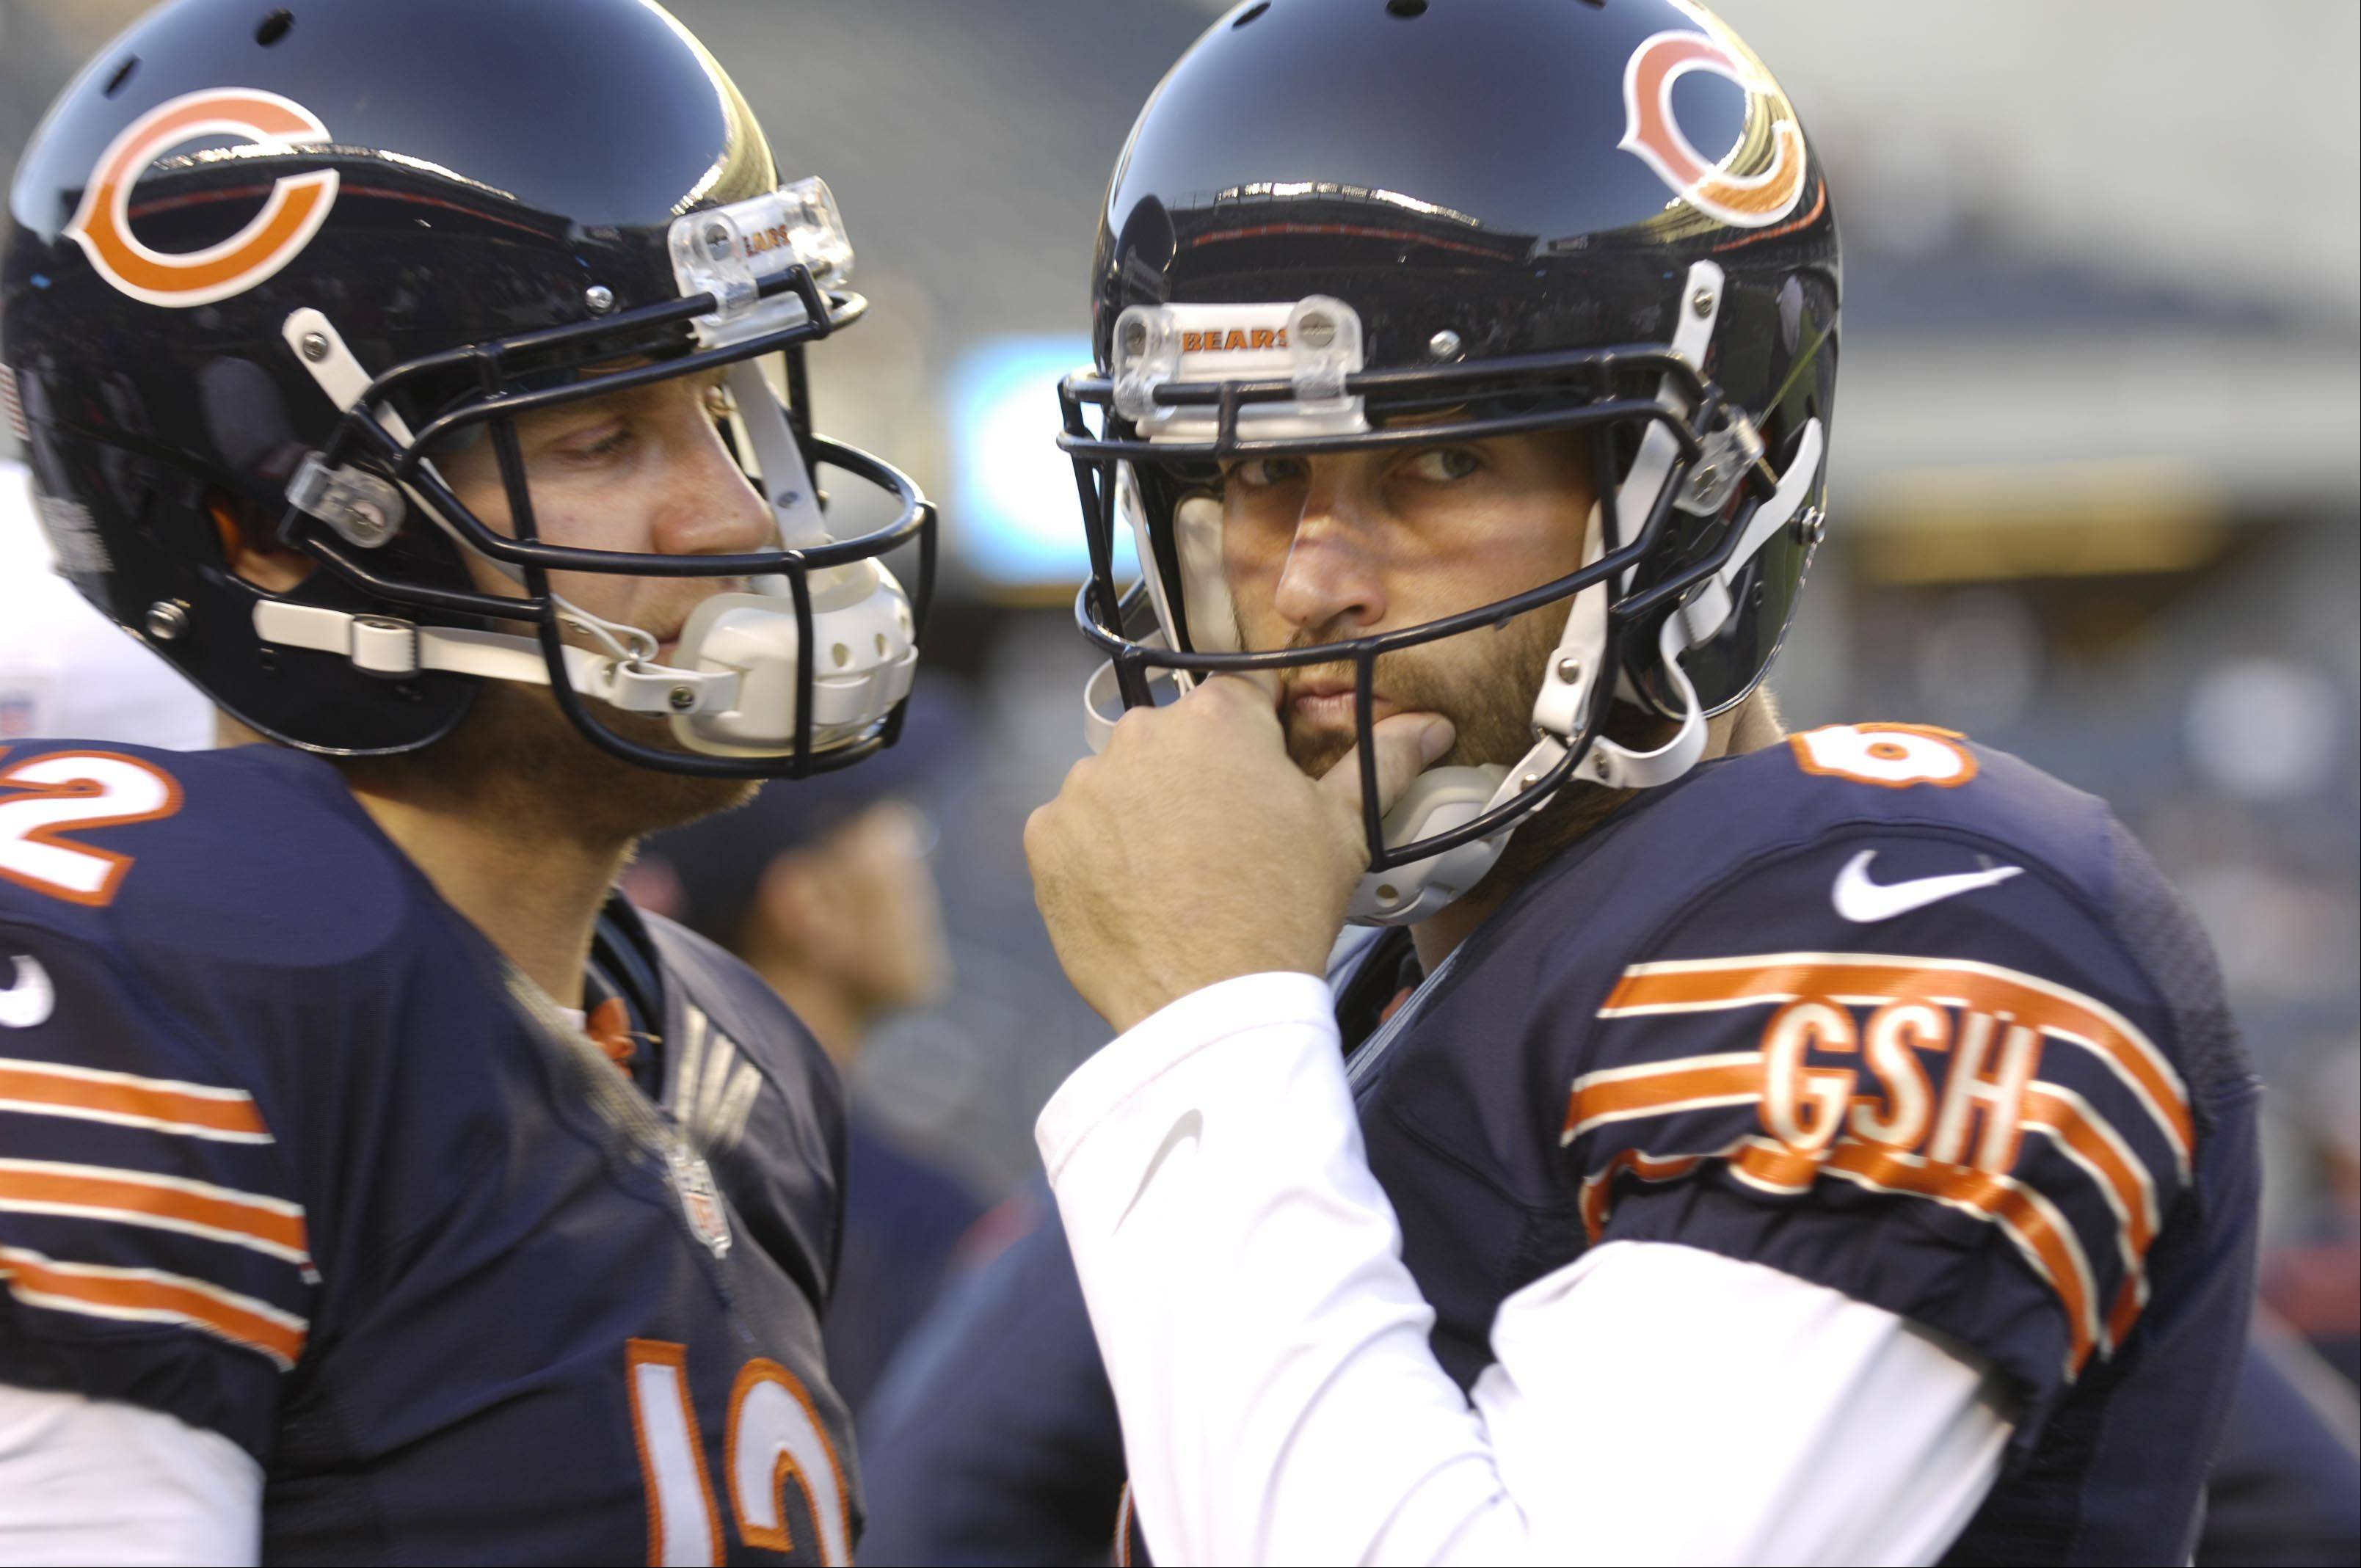 Chicago Bears quarterback Jay Cutler and quarterback Josh McCown talk on the sidelines.